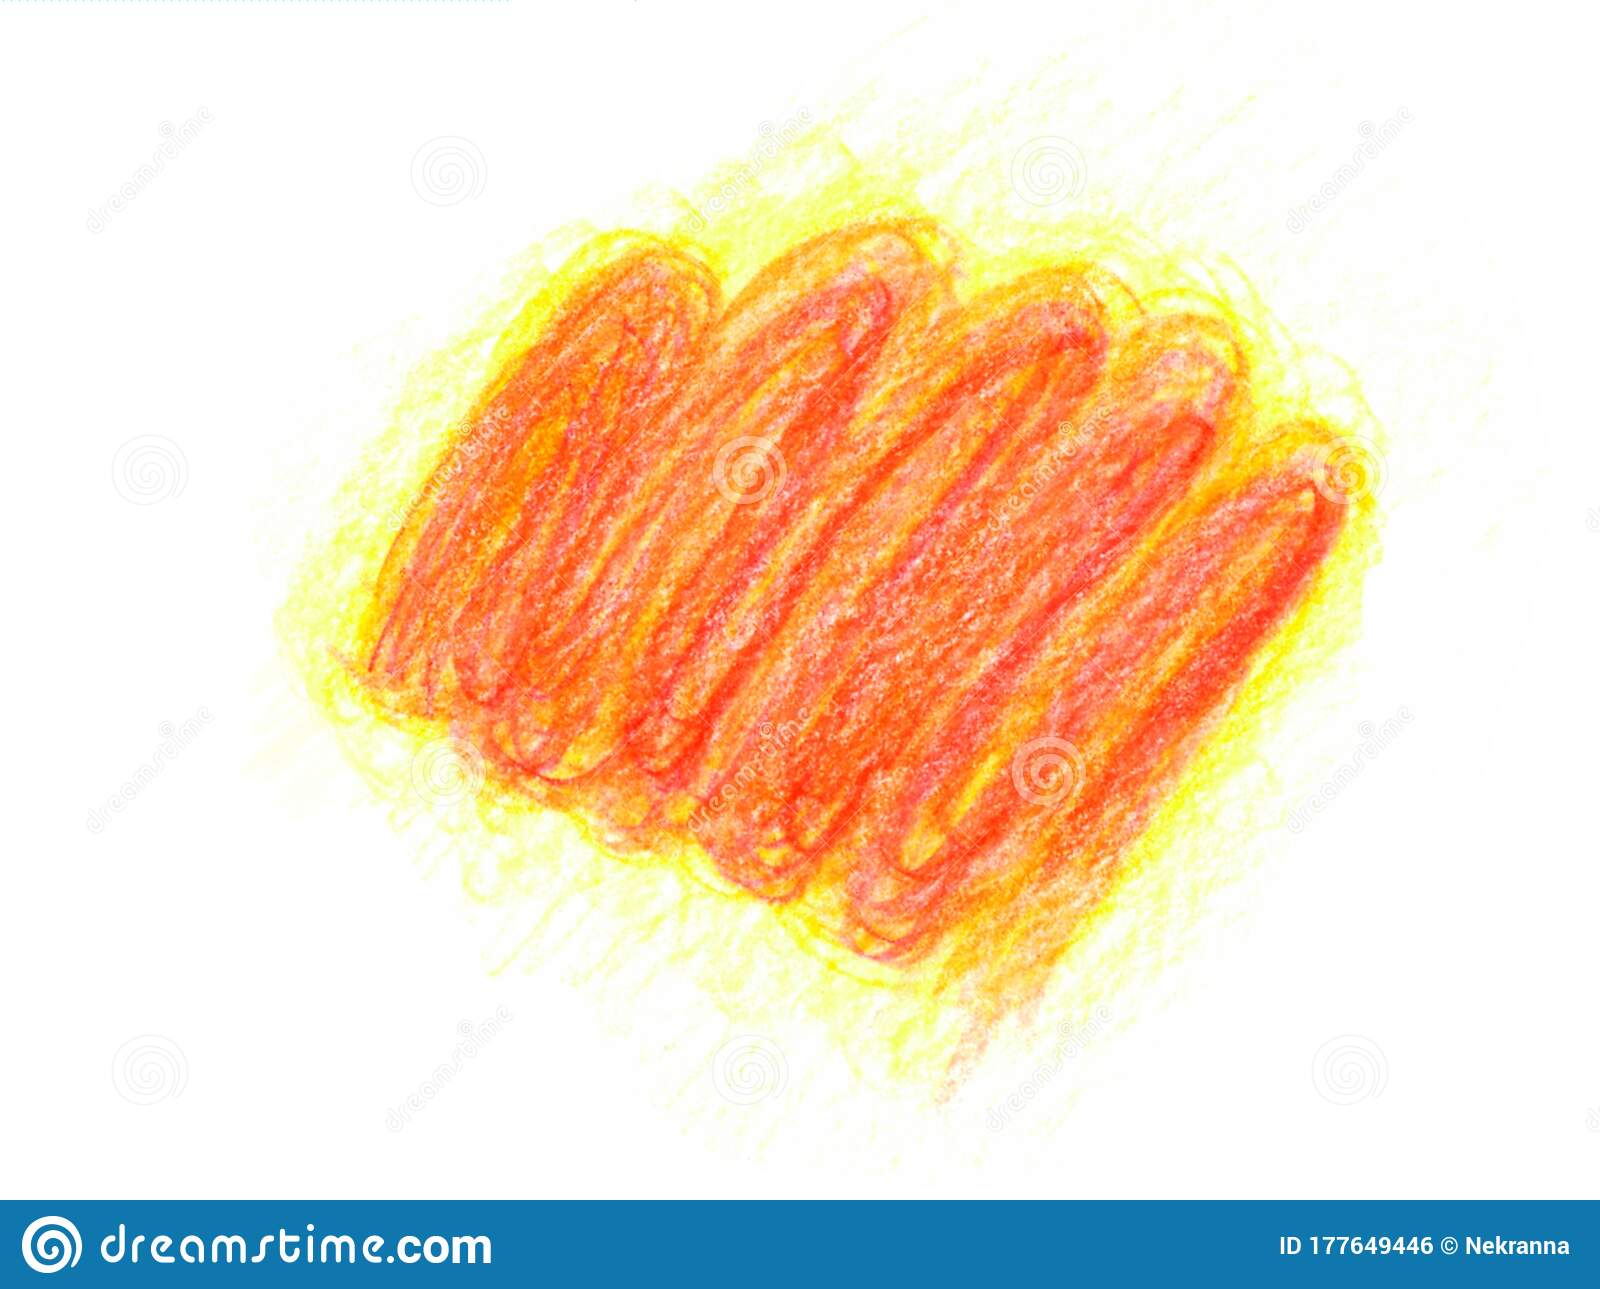 Isolated Abstract Spot Blot Of Fire Red Yellow Orange Color White Background Hand Drawn With Colored Pencil Oil Pastels Stock Illustration Illustration Of Shape Orange 177649446